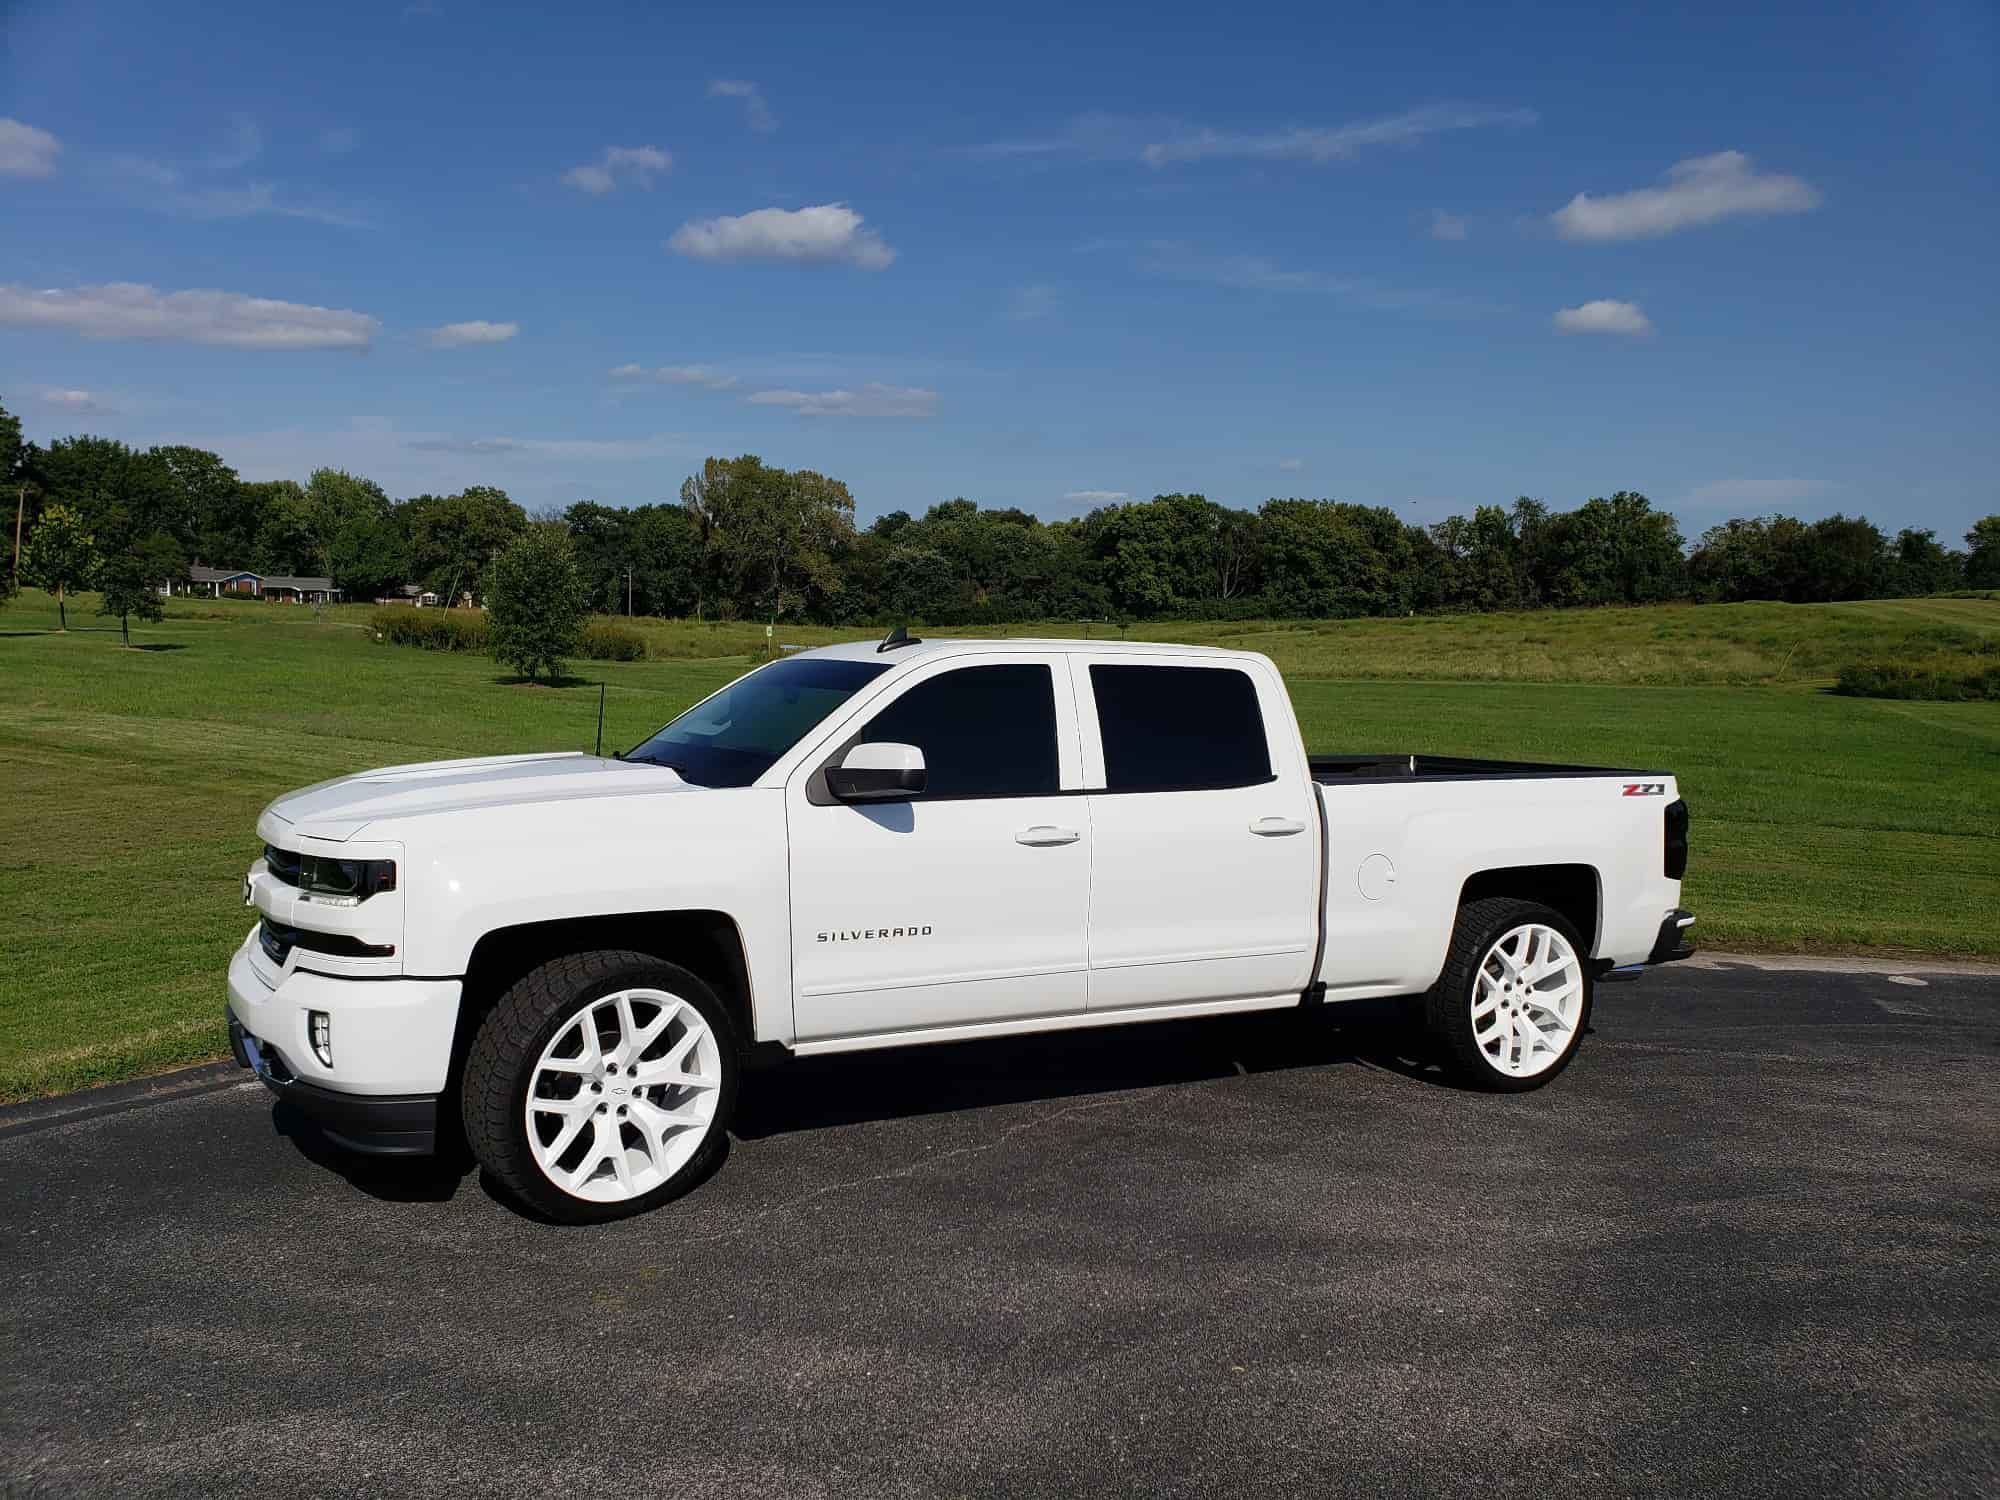 A 2017 Chevrolet Silverado 1500 running the Factory Reproductions Fr44 24x10 +31 wrapped in the Nitto Terra Grappler G2 305/35 and riding on Stock Suspension